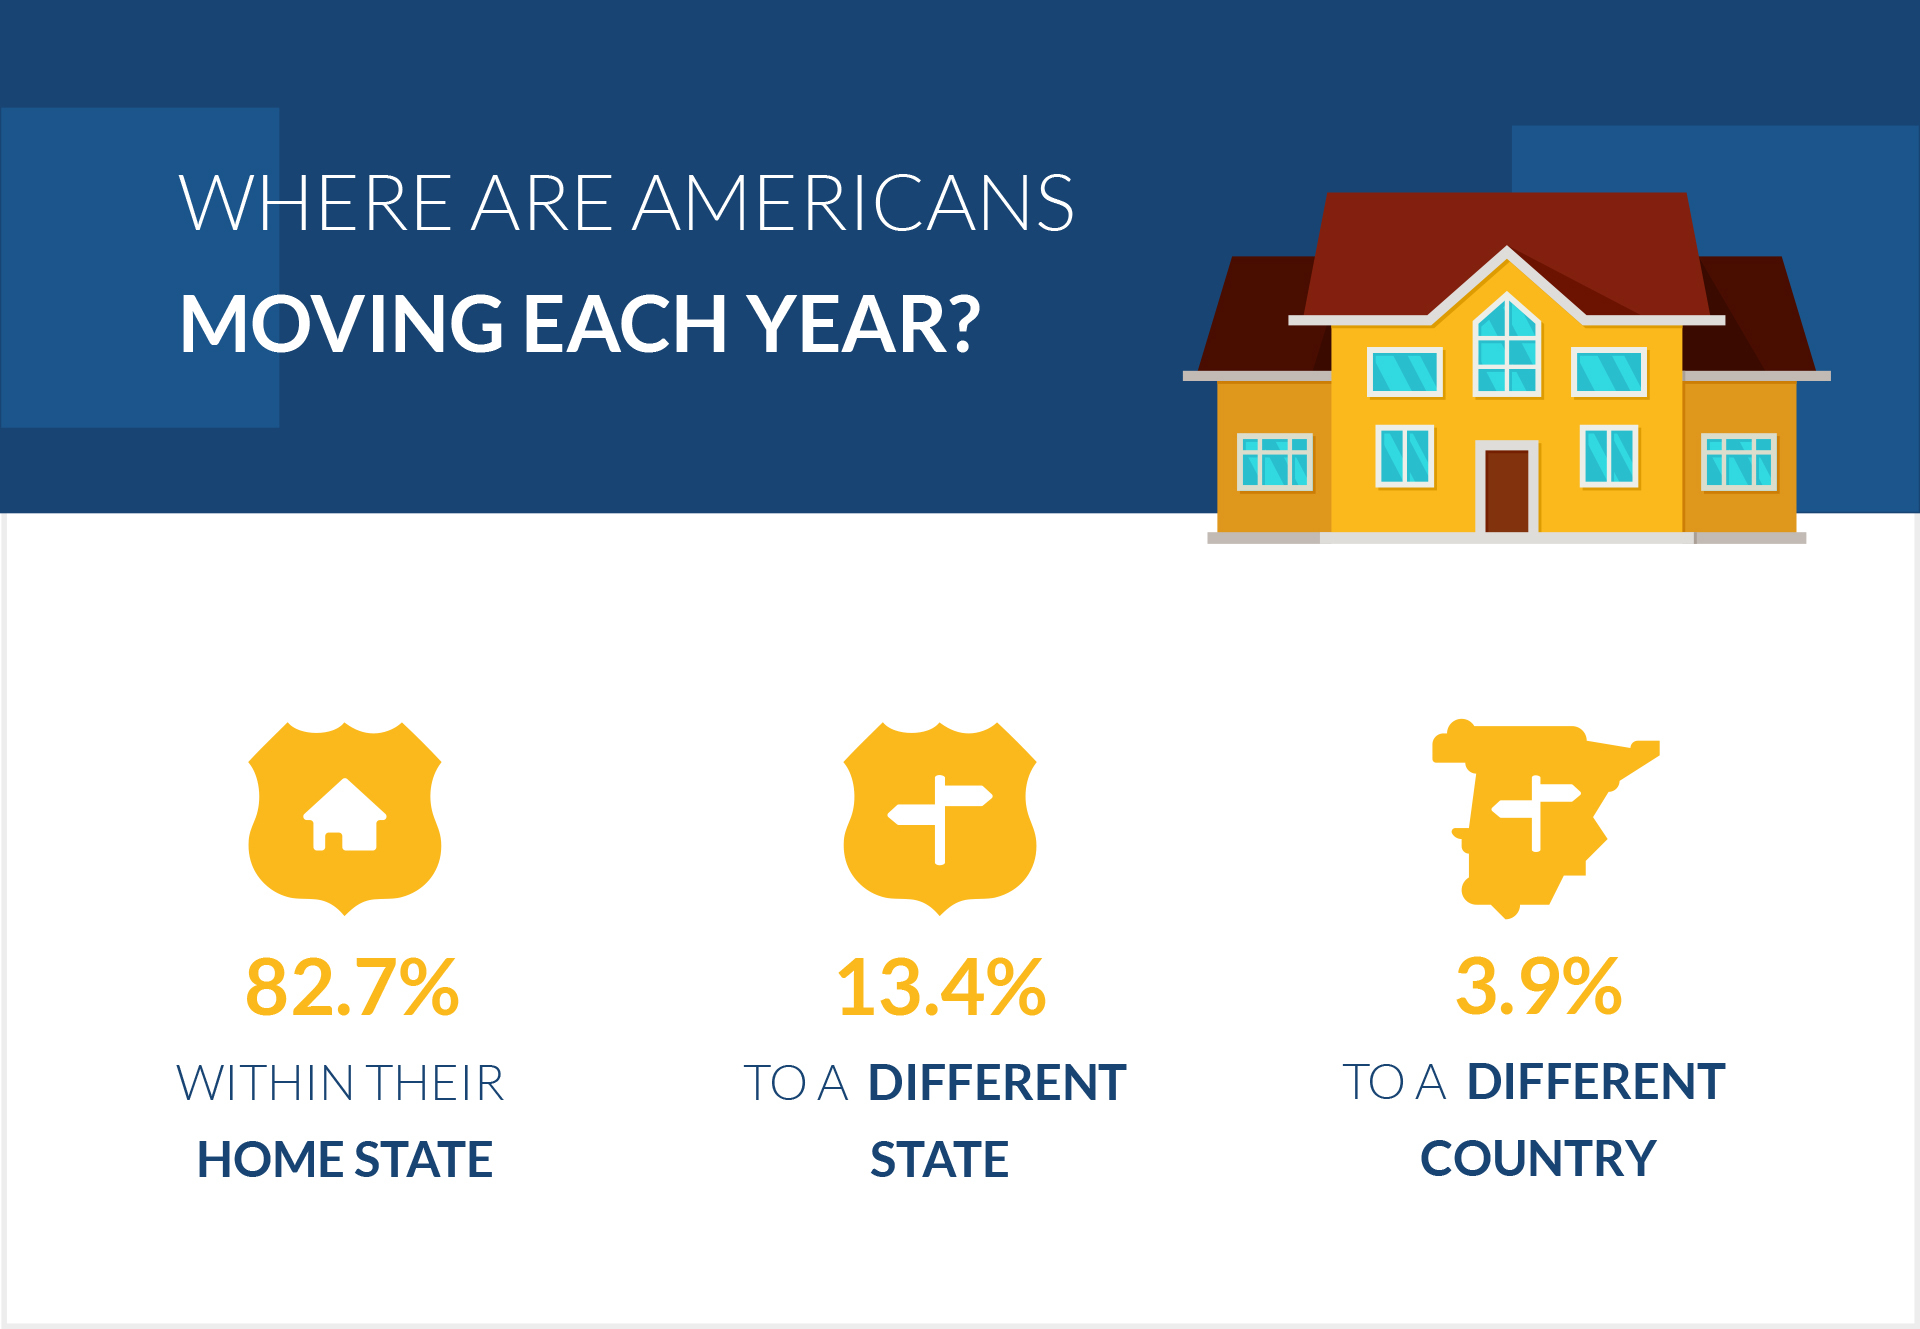 Where are Americans Moving Each Year?